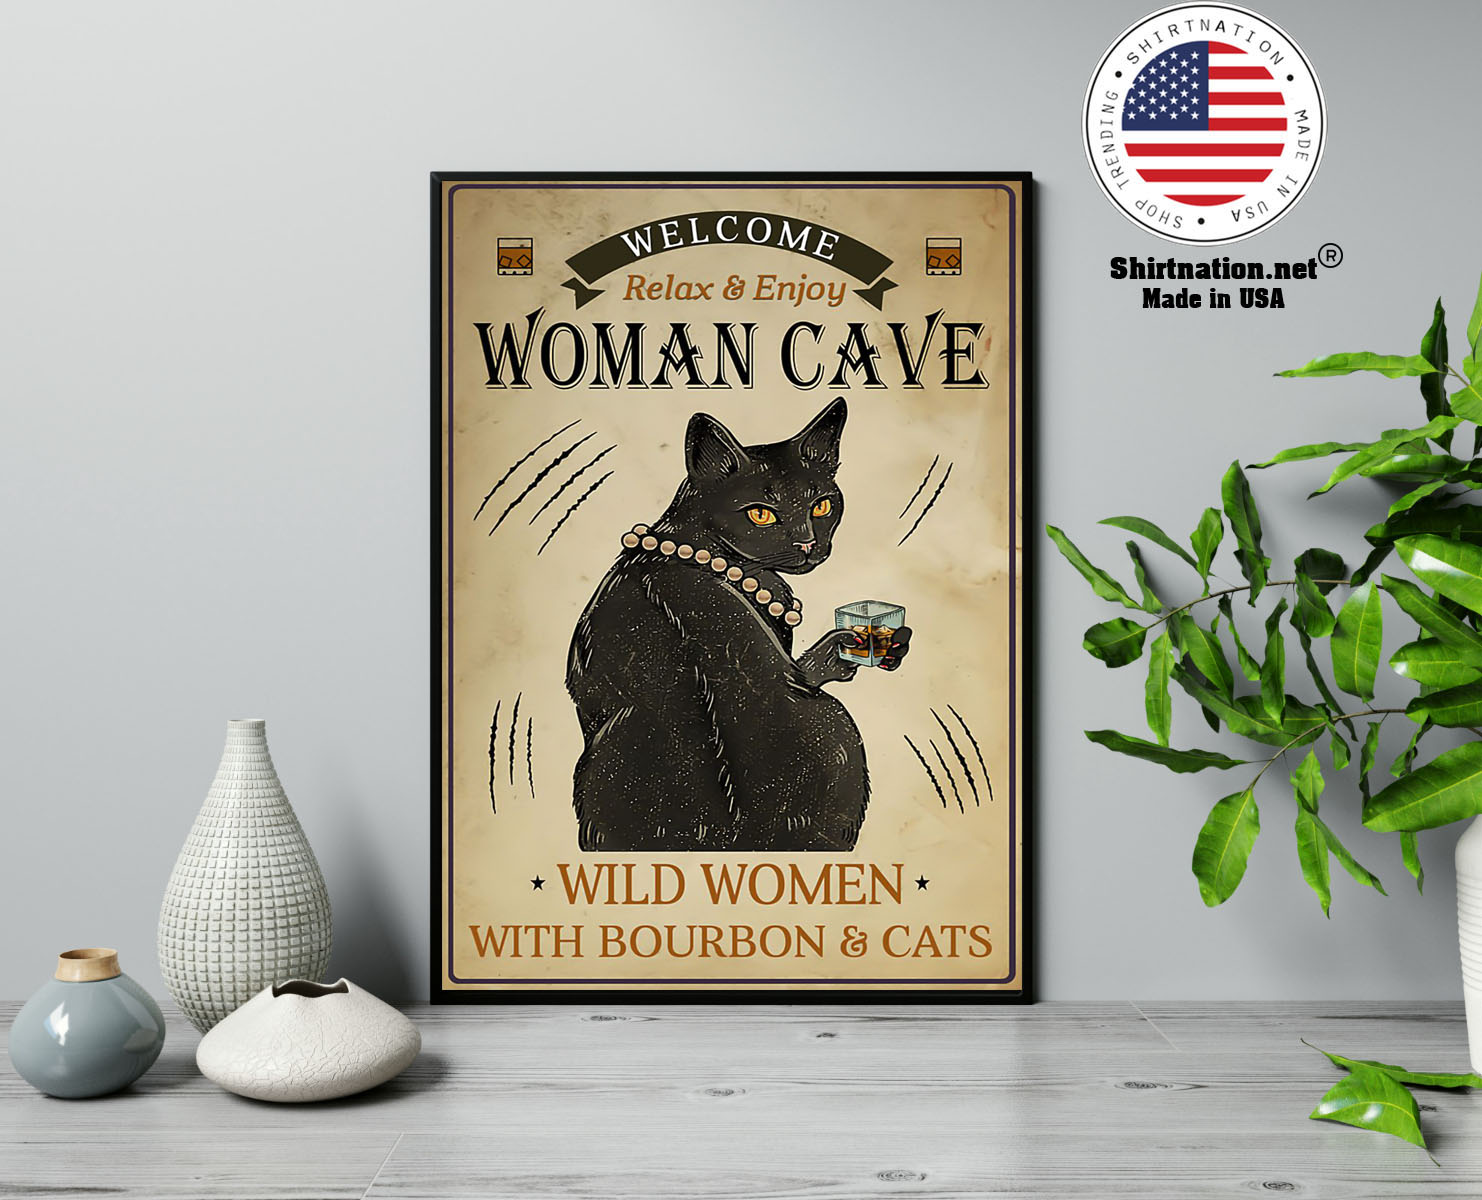 Welcome relax enjoy woman cave will women with bourbon and cats poster 13